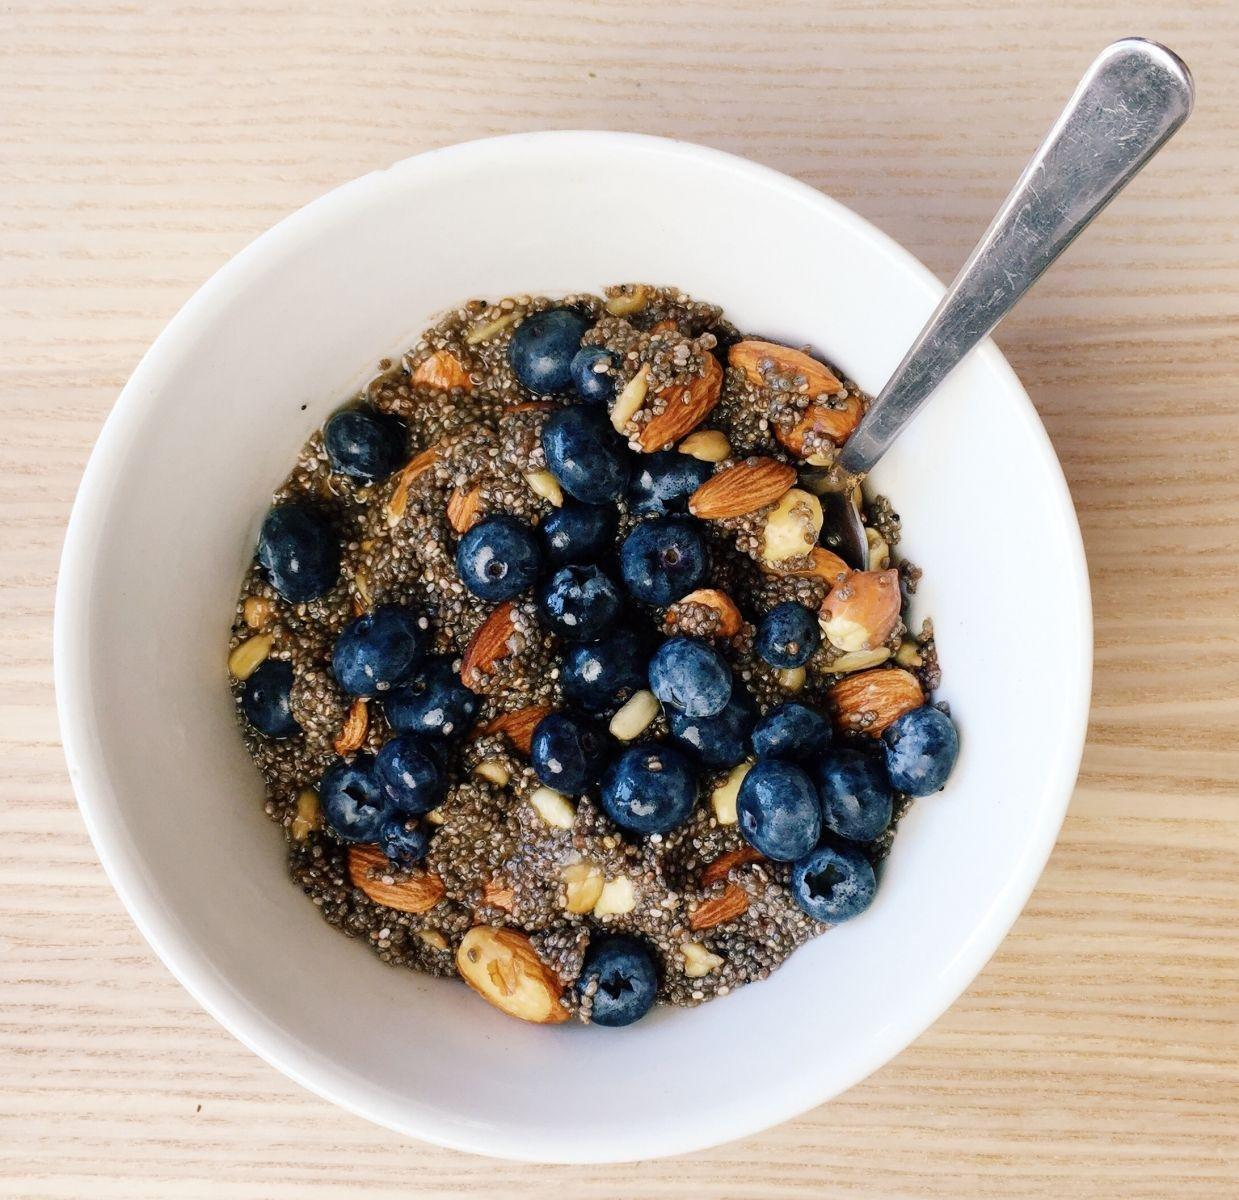 A Three-minute Diabetes Breakfast That Changes Lives?